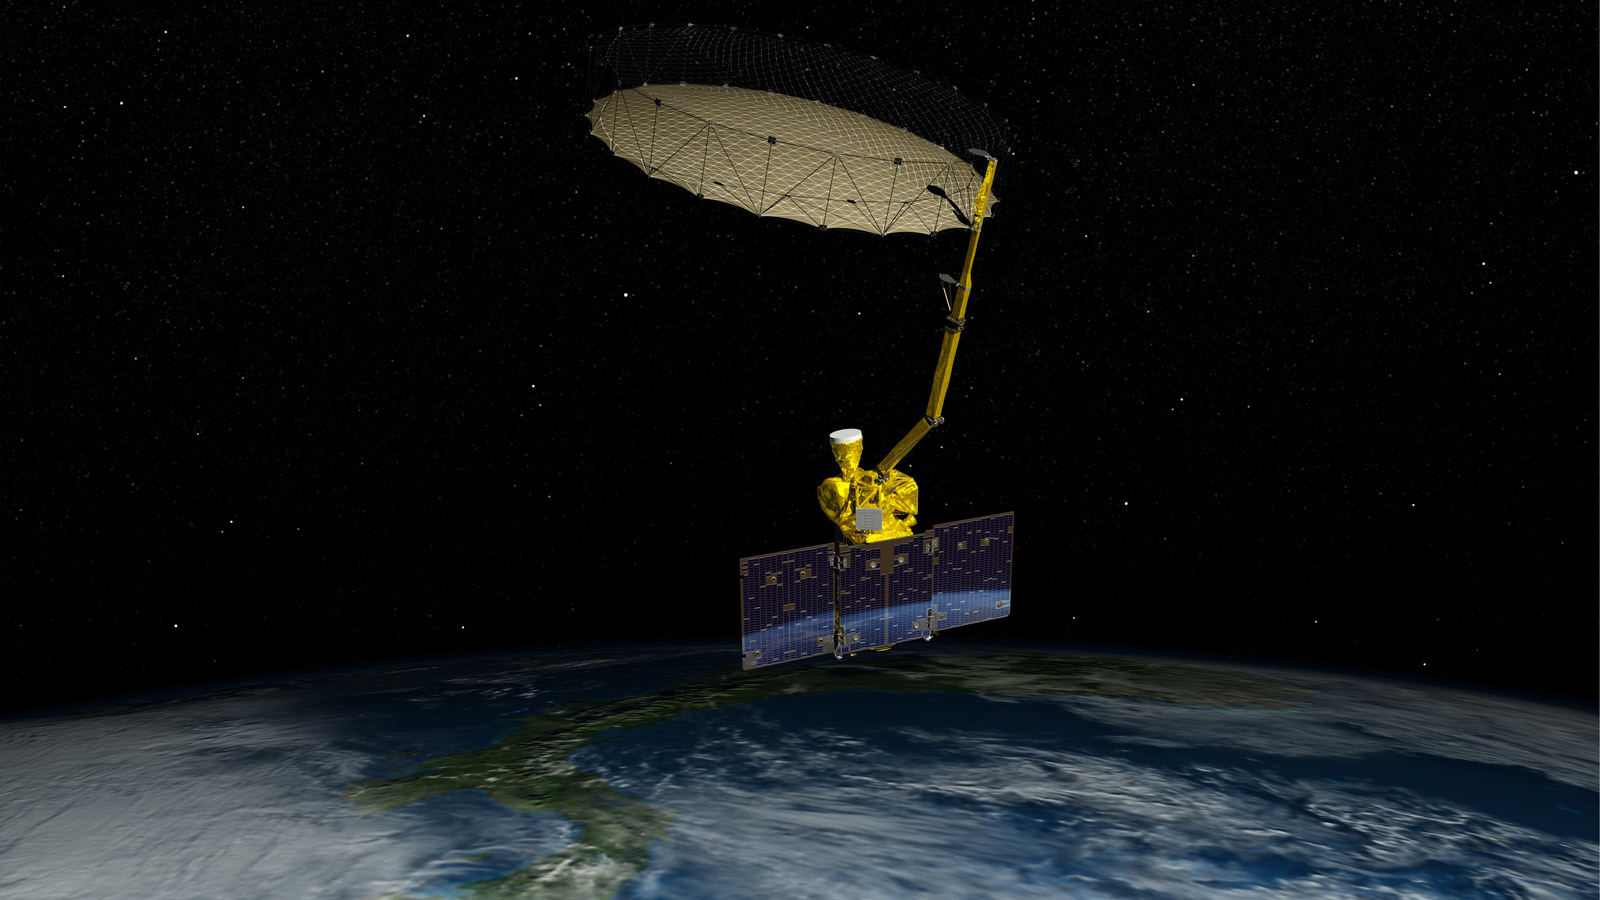 Artist's concept of the SMAP spacecraft and its rotating antenna. Credit: NASA/JPL-Caltech